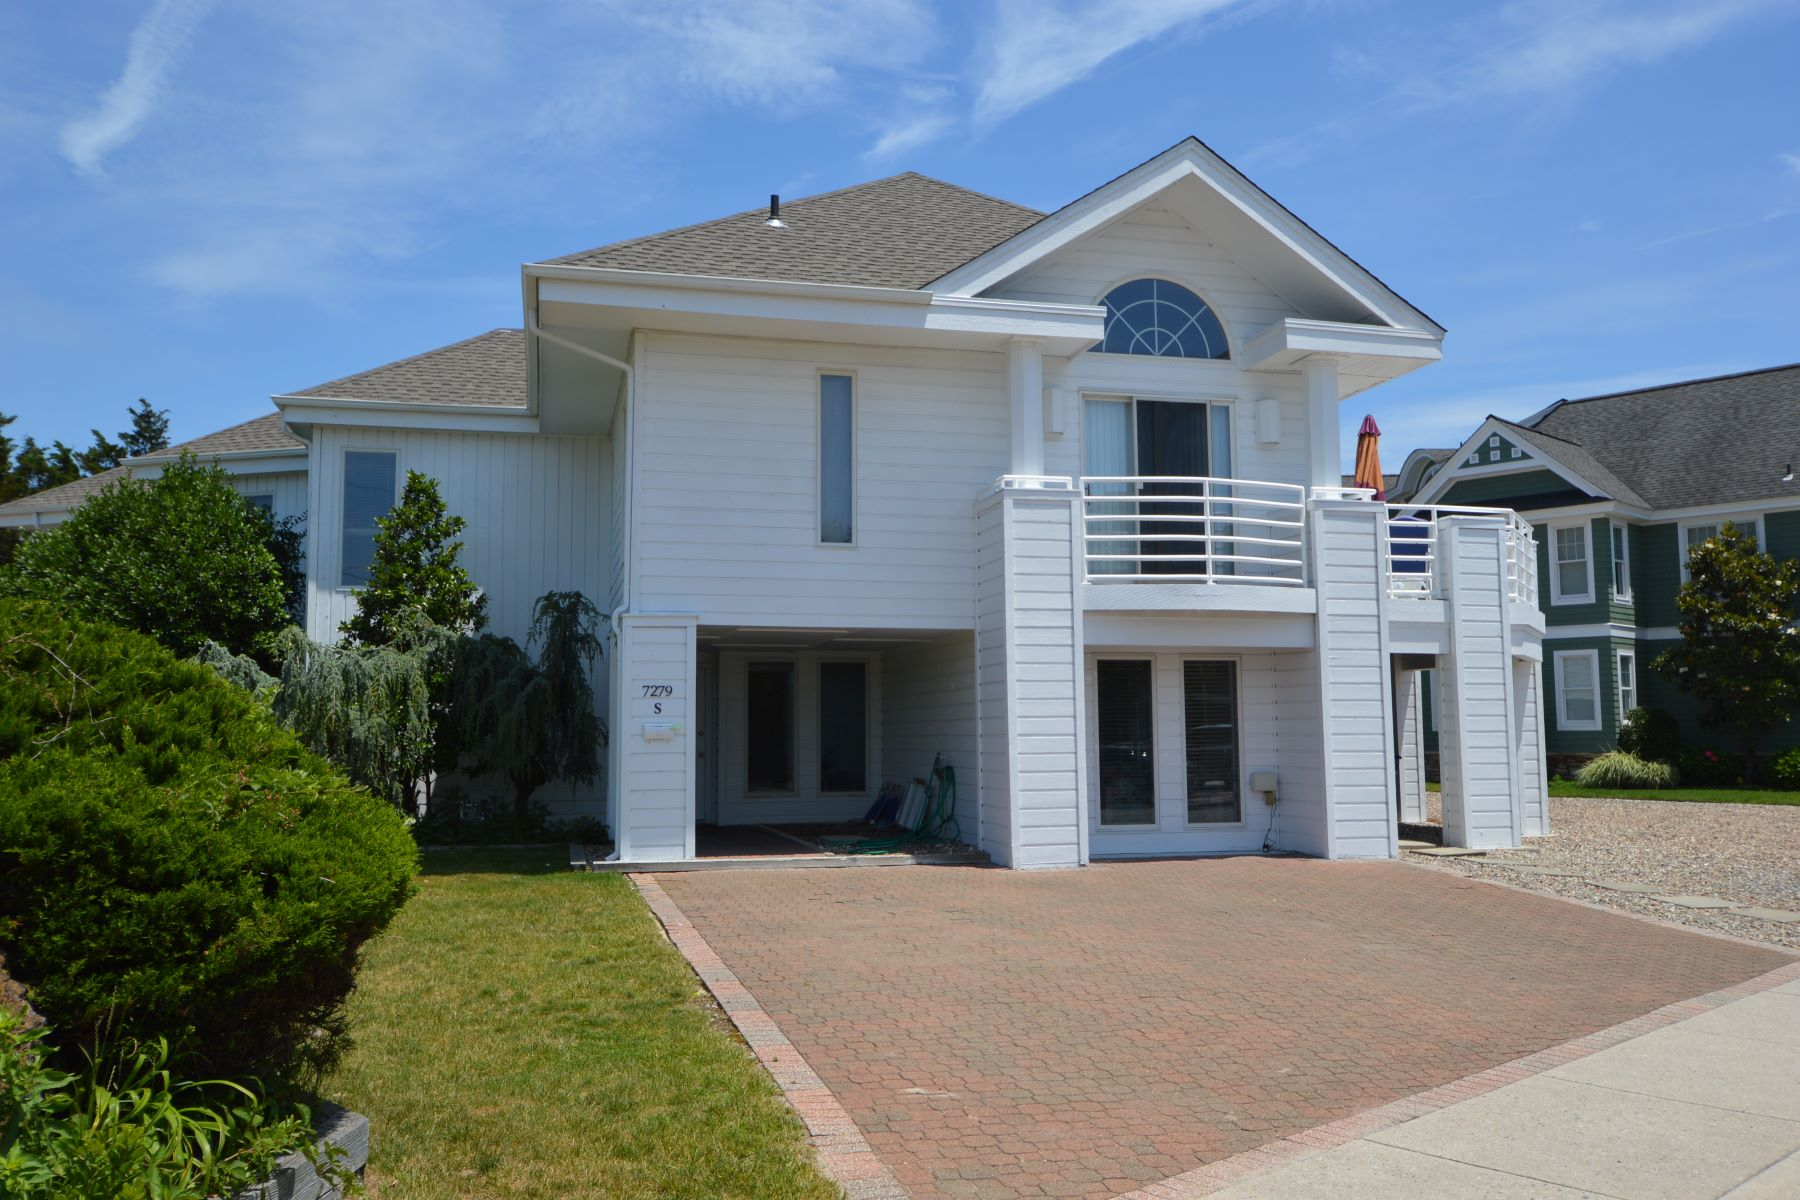 Townhouse for Rent at 7279 Dune Drive 7279 Dune Drive South Unit, Avalon, New Jersey 08202 United States